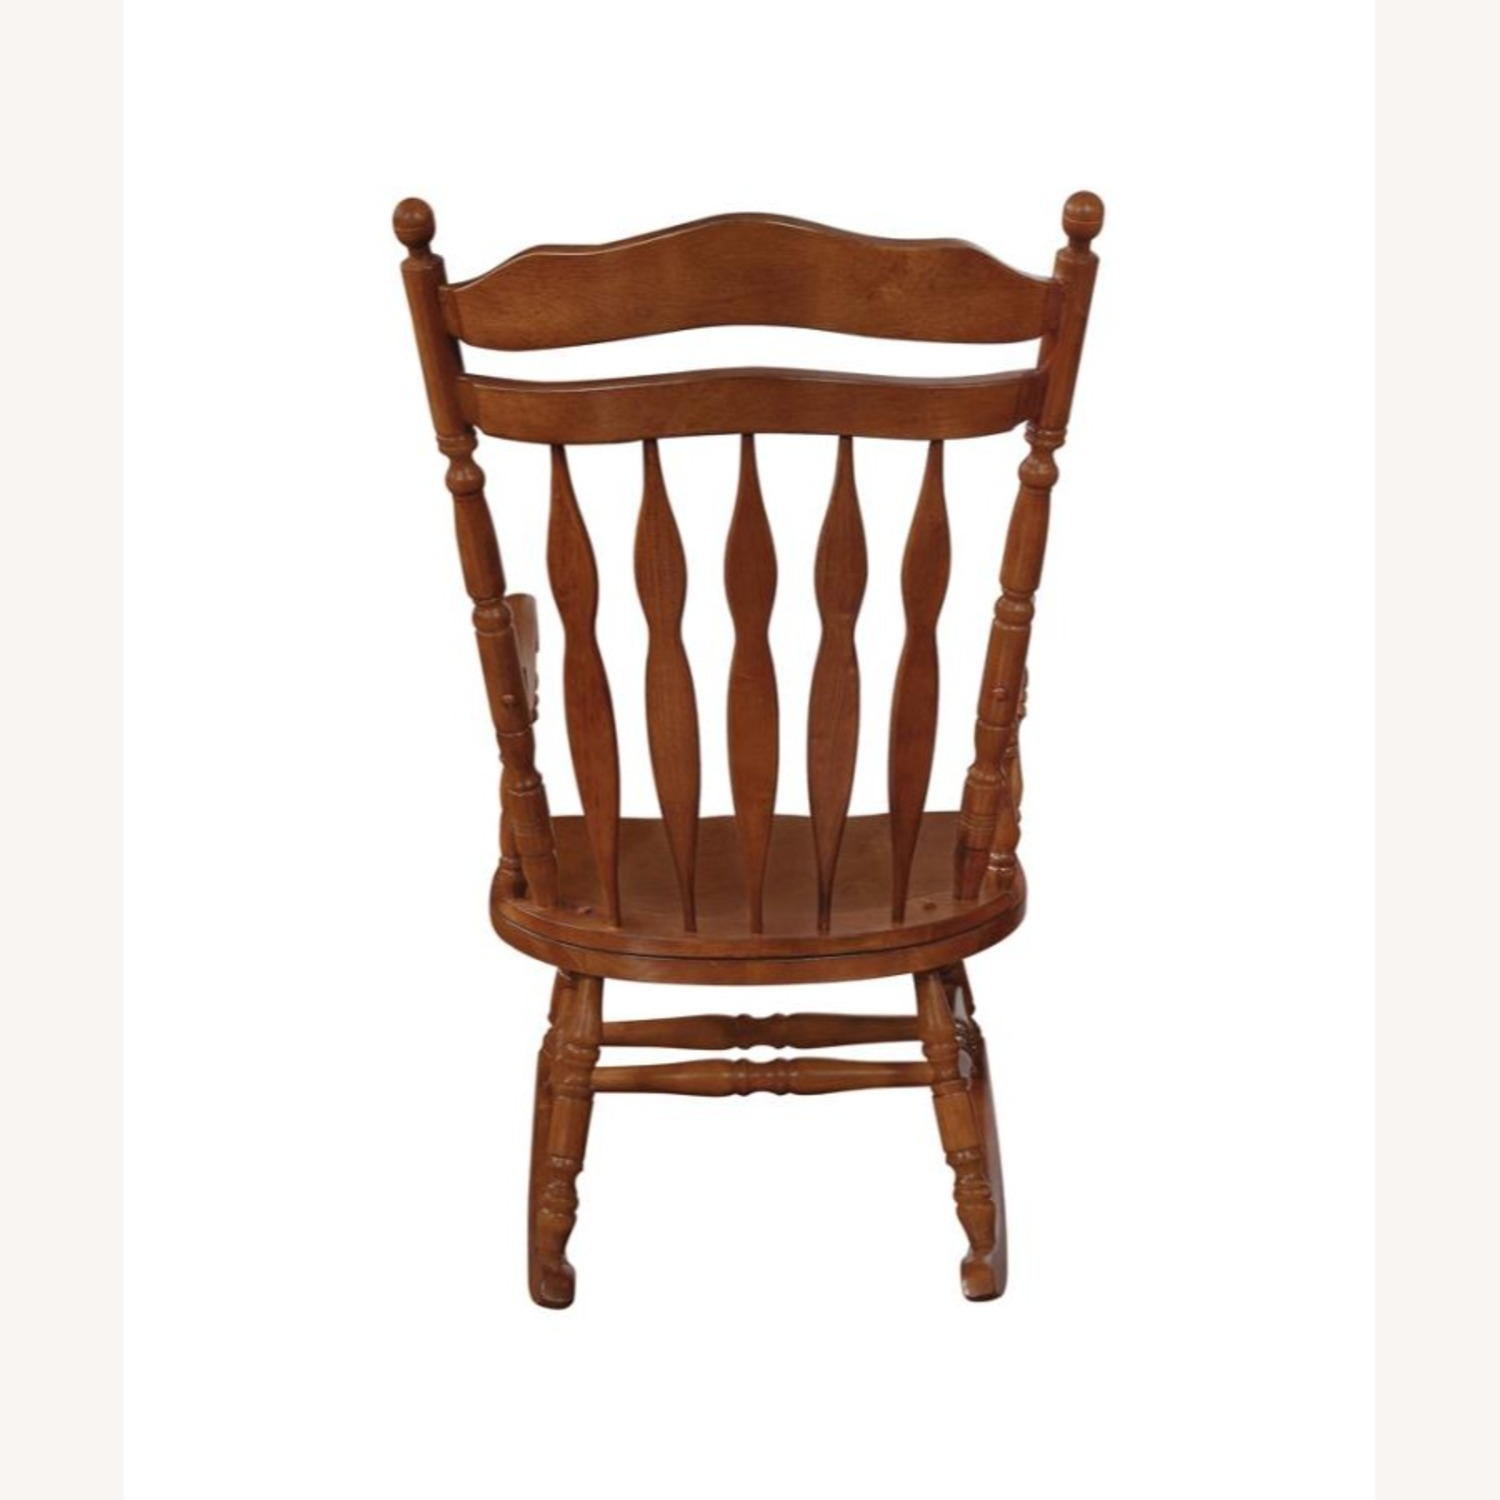 Rocking Chair In Medium Brown Rubberwood Finish - image-2